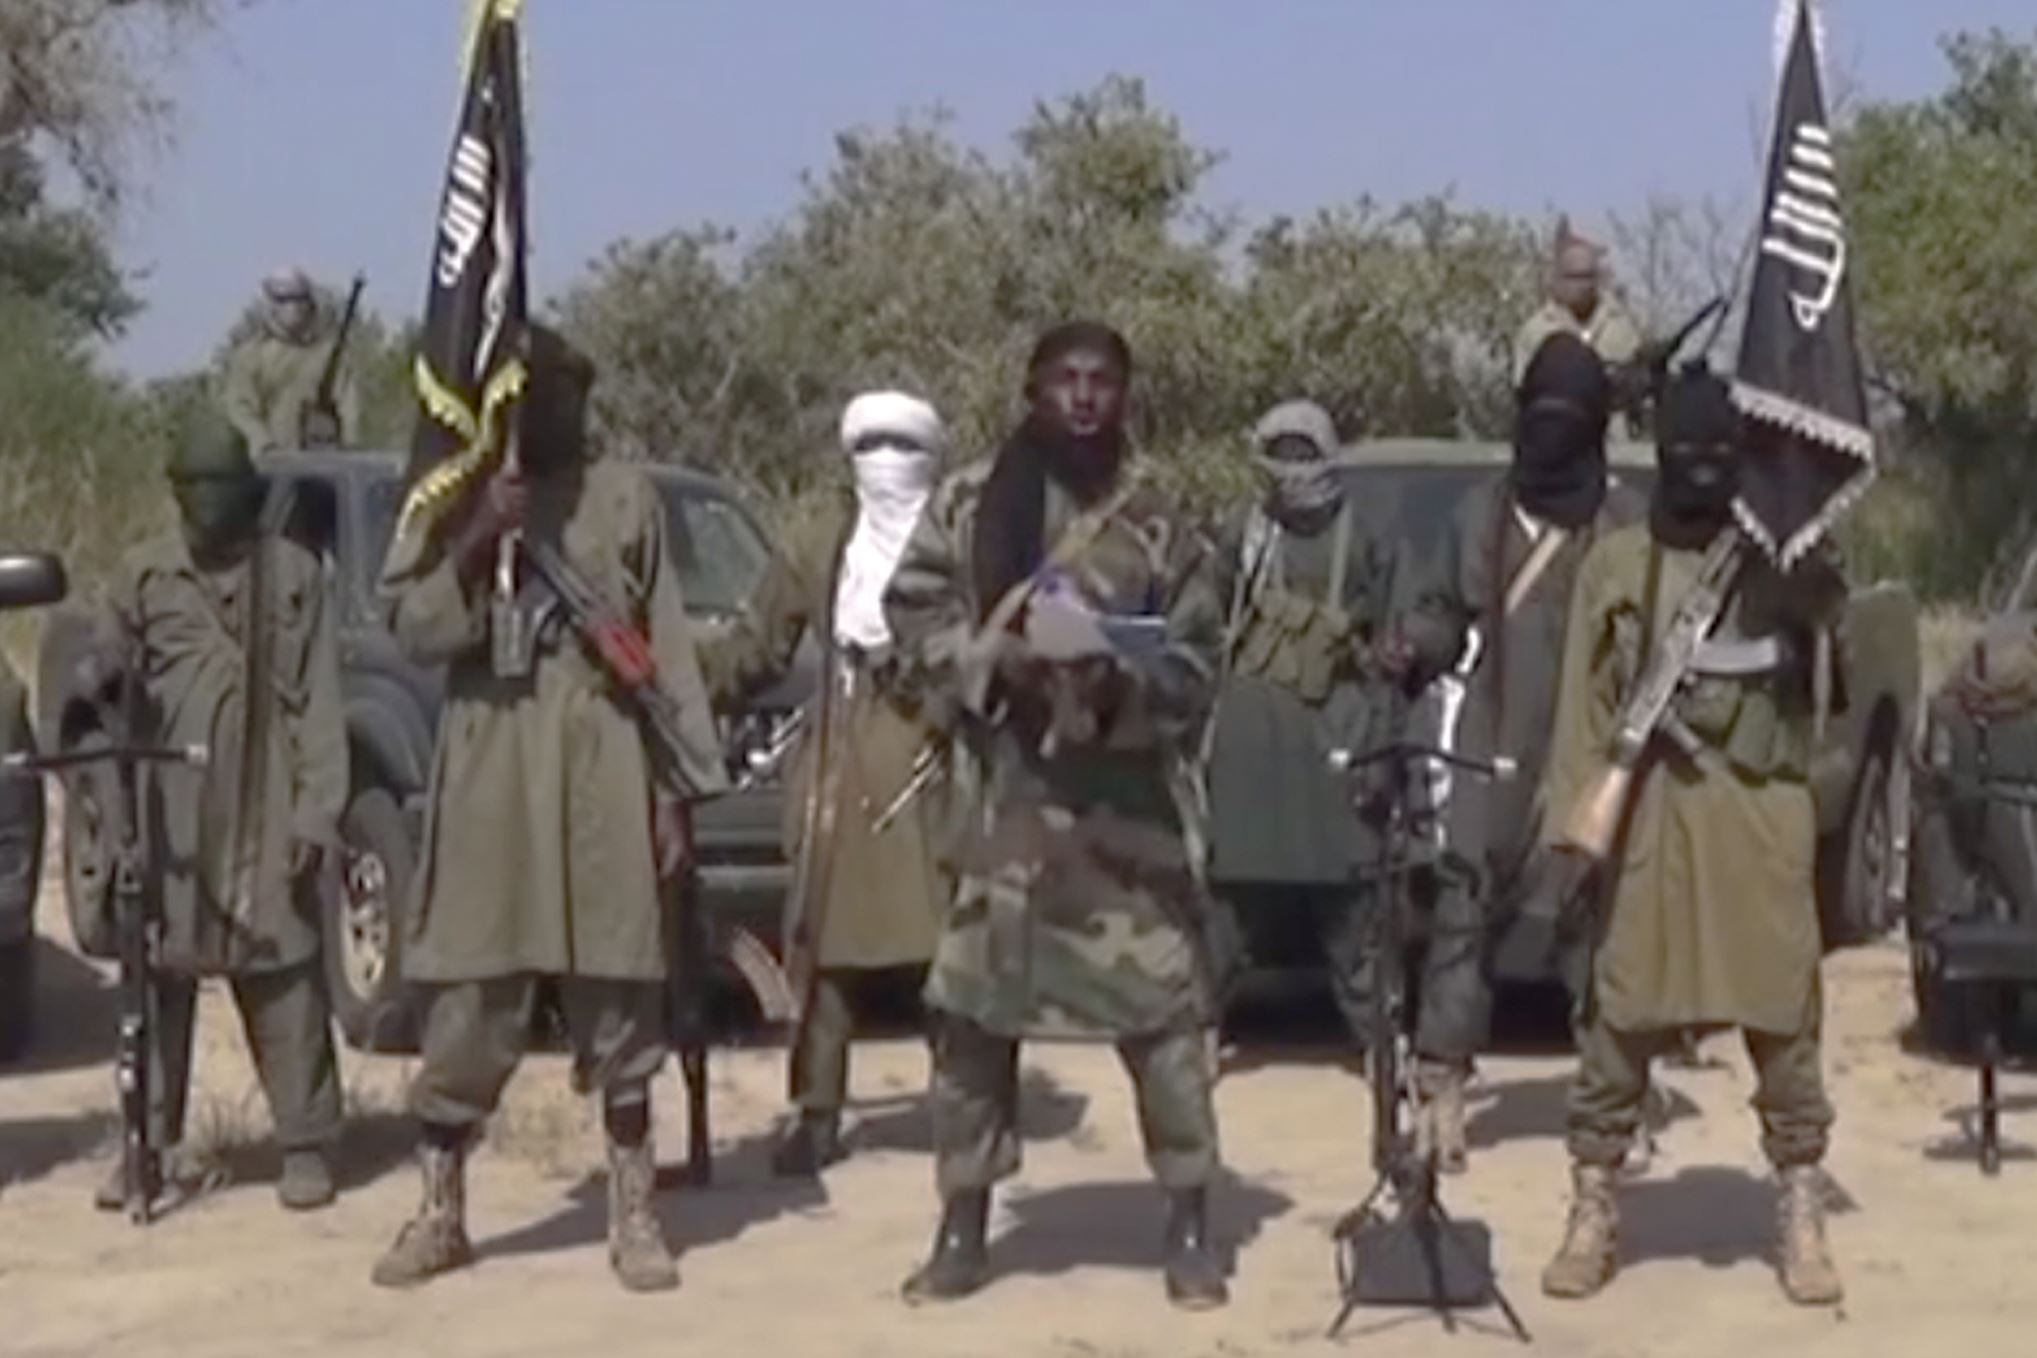 Suspected Boko Haram militants take over Magumeri town in northeast Nigeria: residents